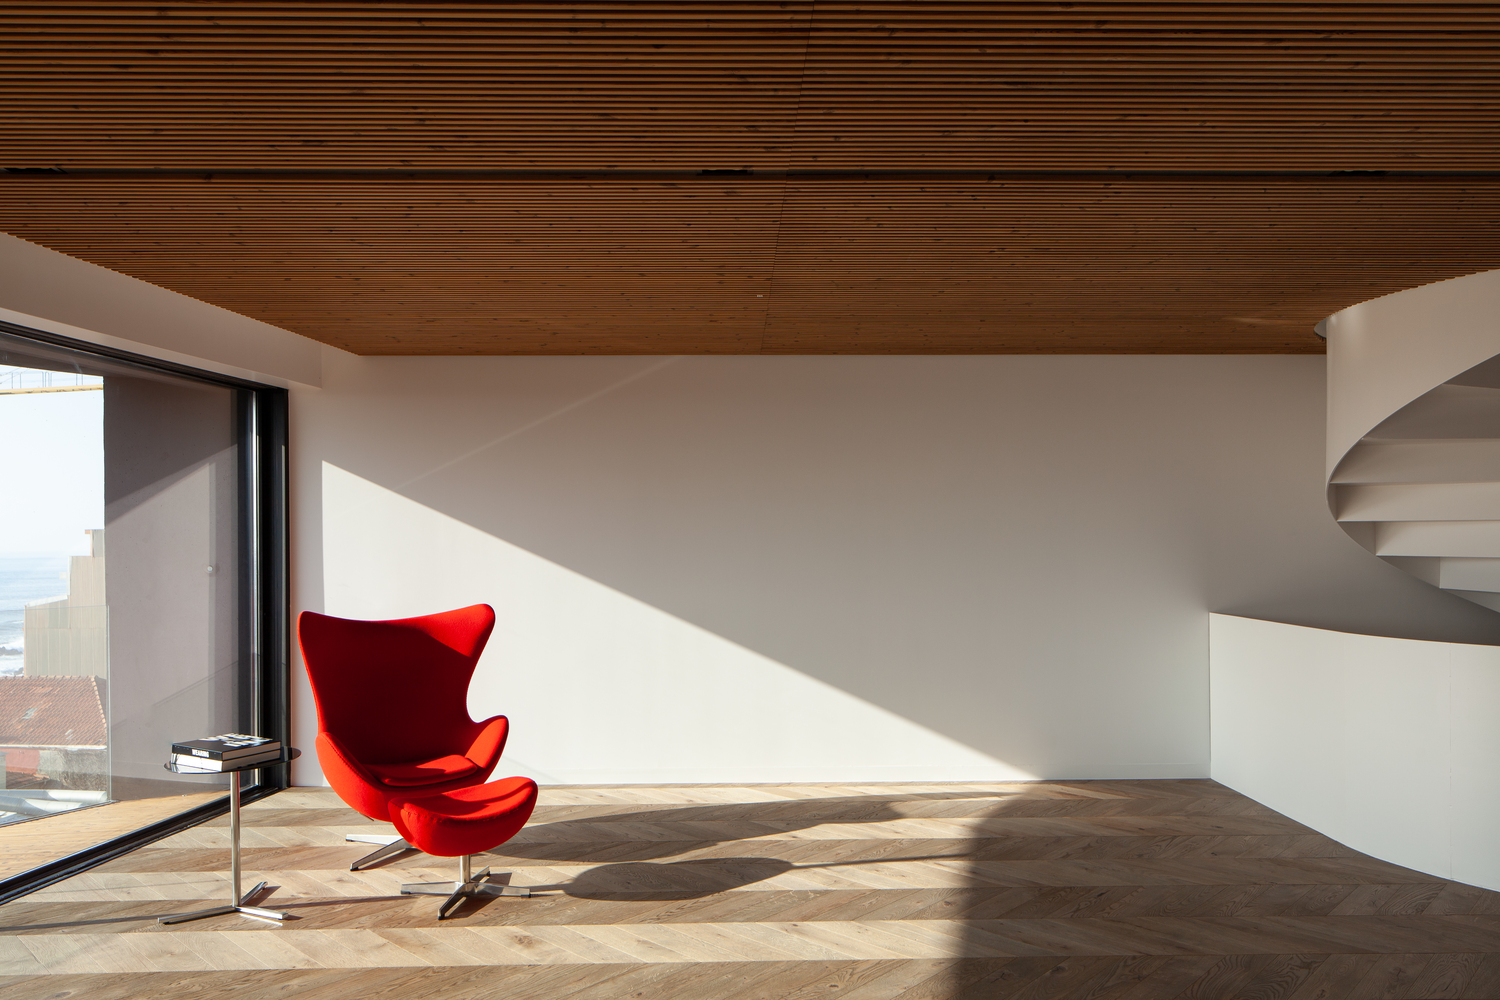 'Foz Housing' Is The Most Recent Project By dEMMM Arquitectura foz housing 'Foz Housing' Is The Most Recent Project By dEMMM Arquitectura 6